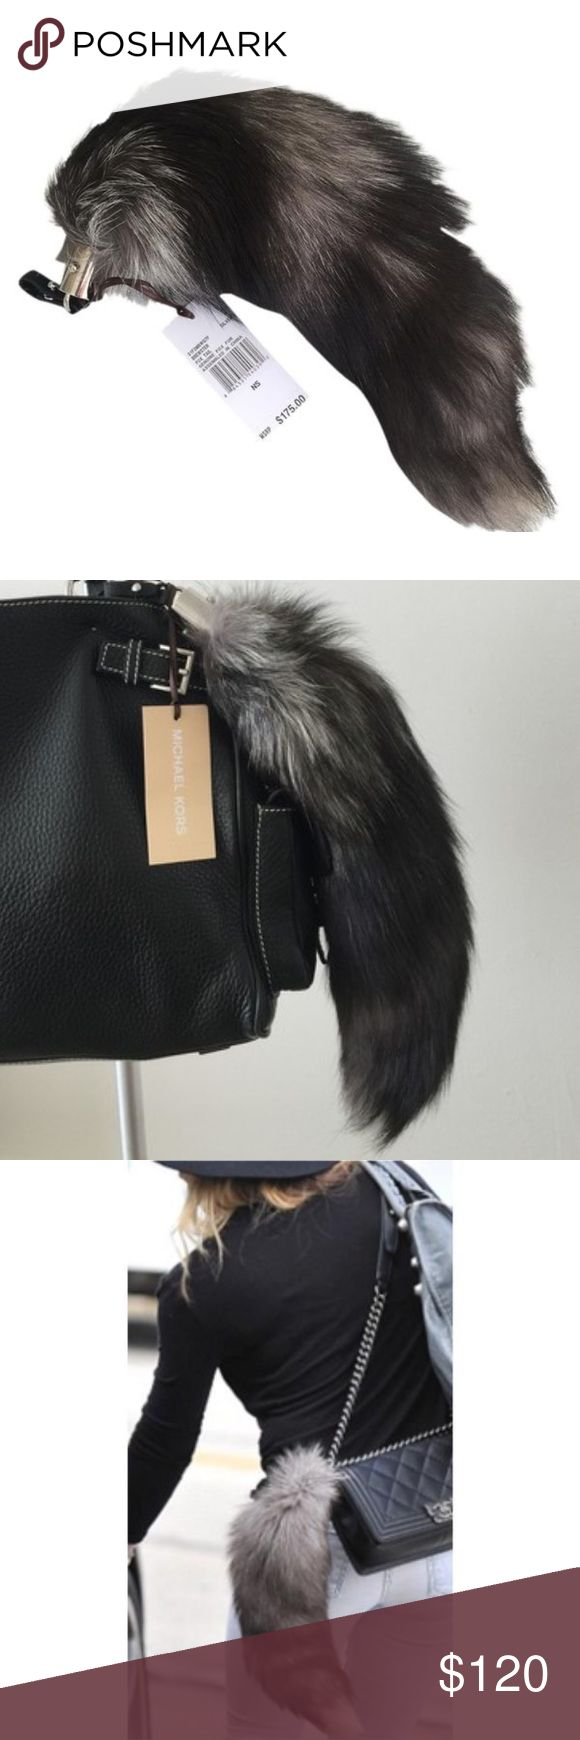 Michael Kors Brewster Fox Tail purse charm hangtag Natural coyote fox fur (USA). Leather loop at silver metal top. Imported. : Brand new with tags $175. No trades Michael Kors Bags Clutches & Wristlets